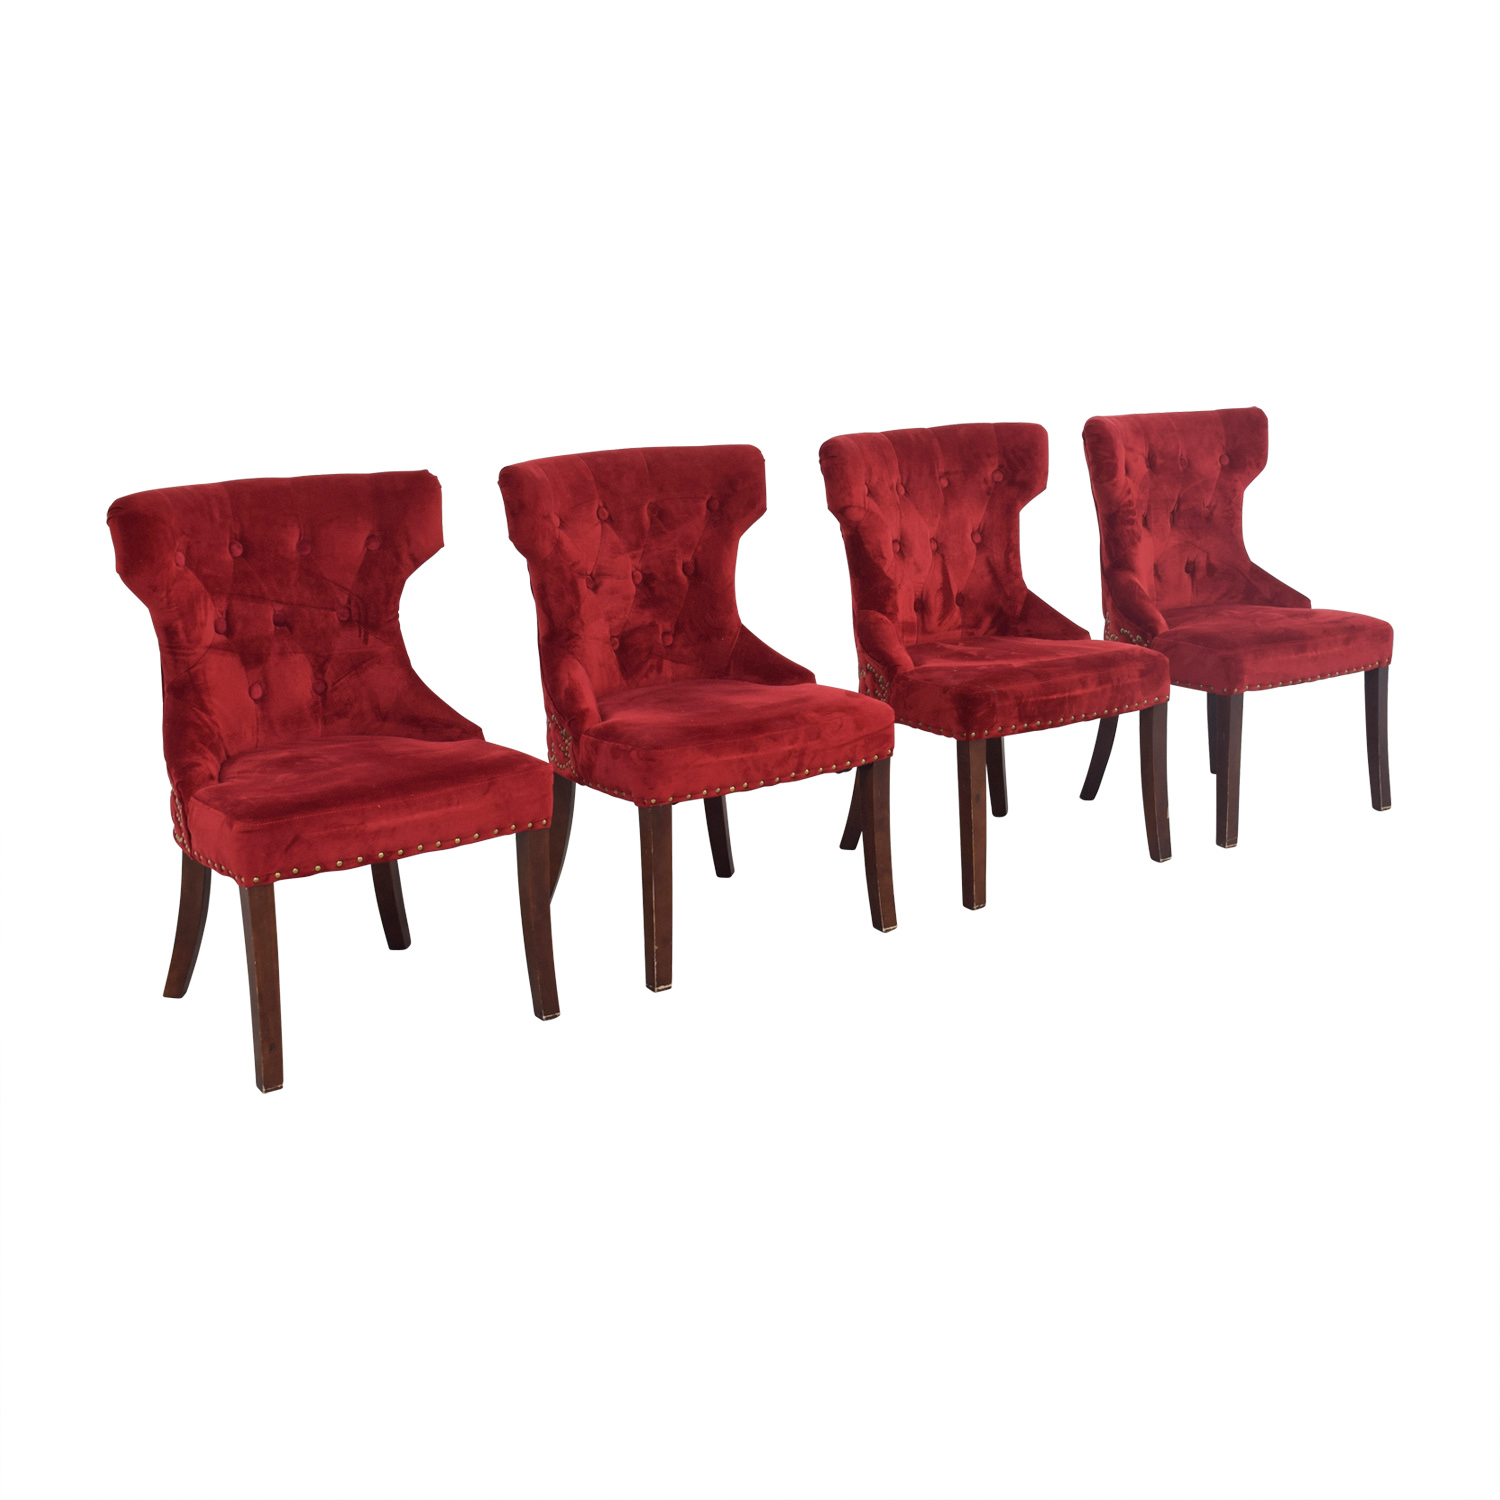 Tufted Nailhead Red Velvet Dining Chairs Second Hand